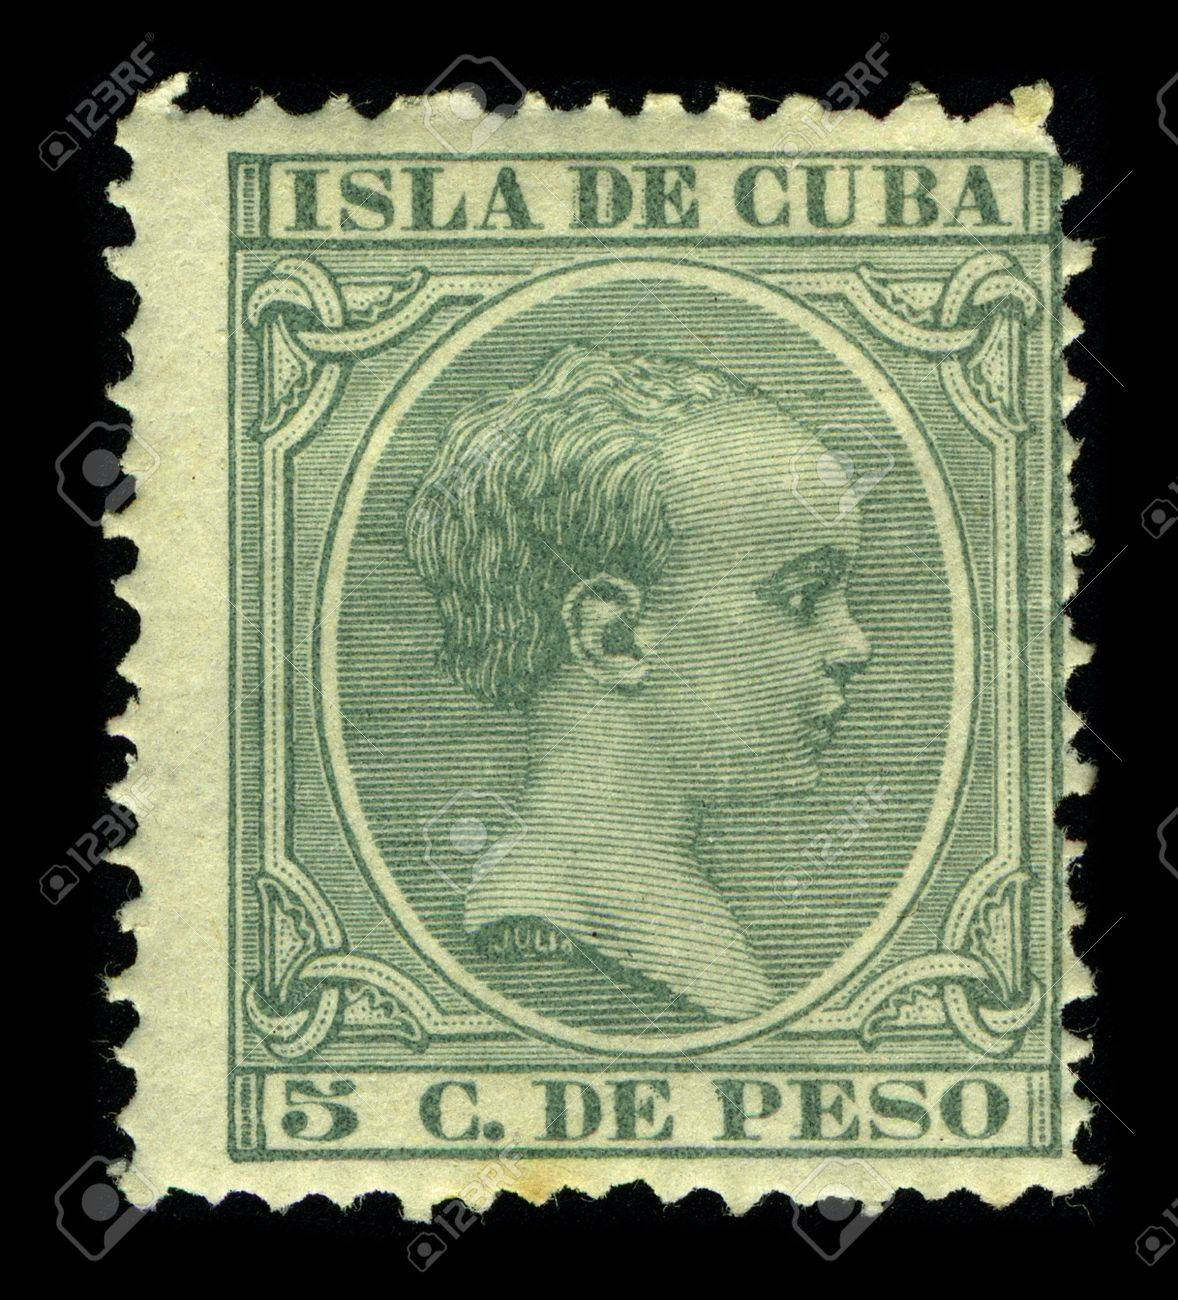 CUBA-CIRCA 1890:A stamp printed in CUBA shows image of the Alfonso XIII ( Alphonse Leon Ferdinand Mary James Isidor Pascal Anthony of Bourbon and Austria-Lorraine) (Madrid, 17 May 1886 - Rome, 28 February 1941), King of Spain, posthumous son of Alfonso XI Stock Photo - 9144052